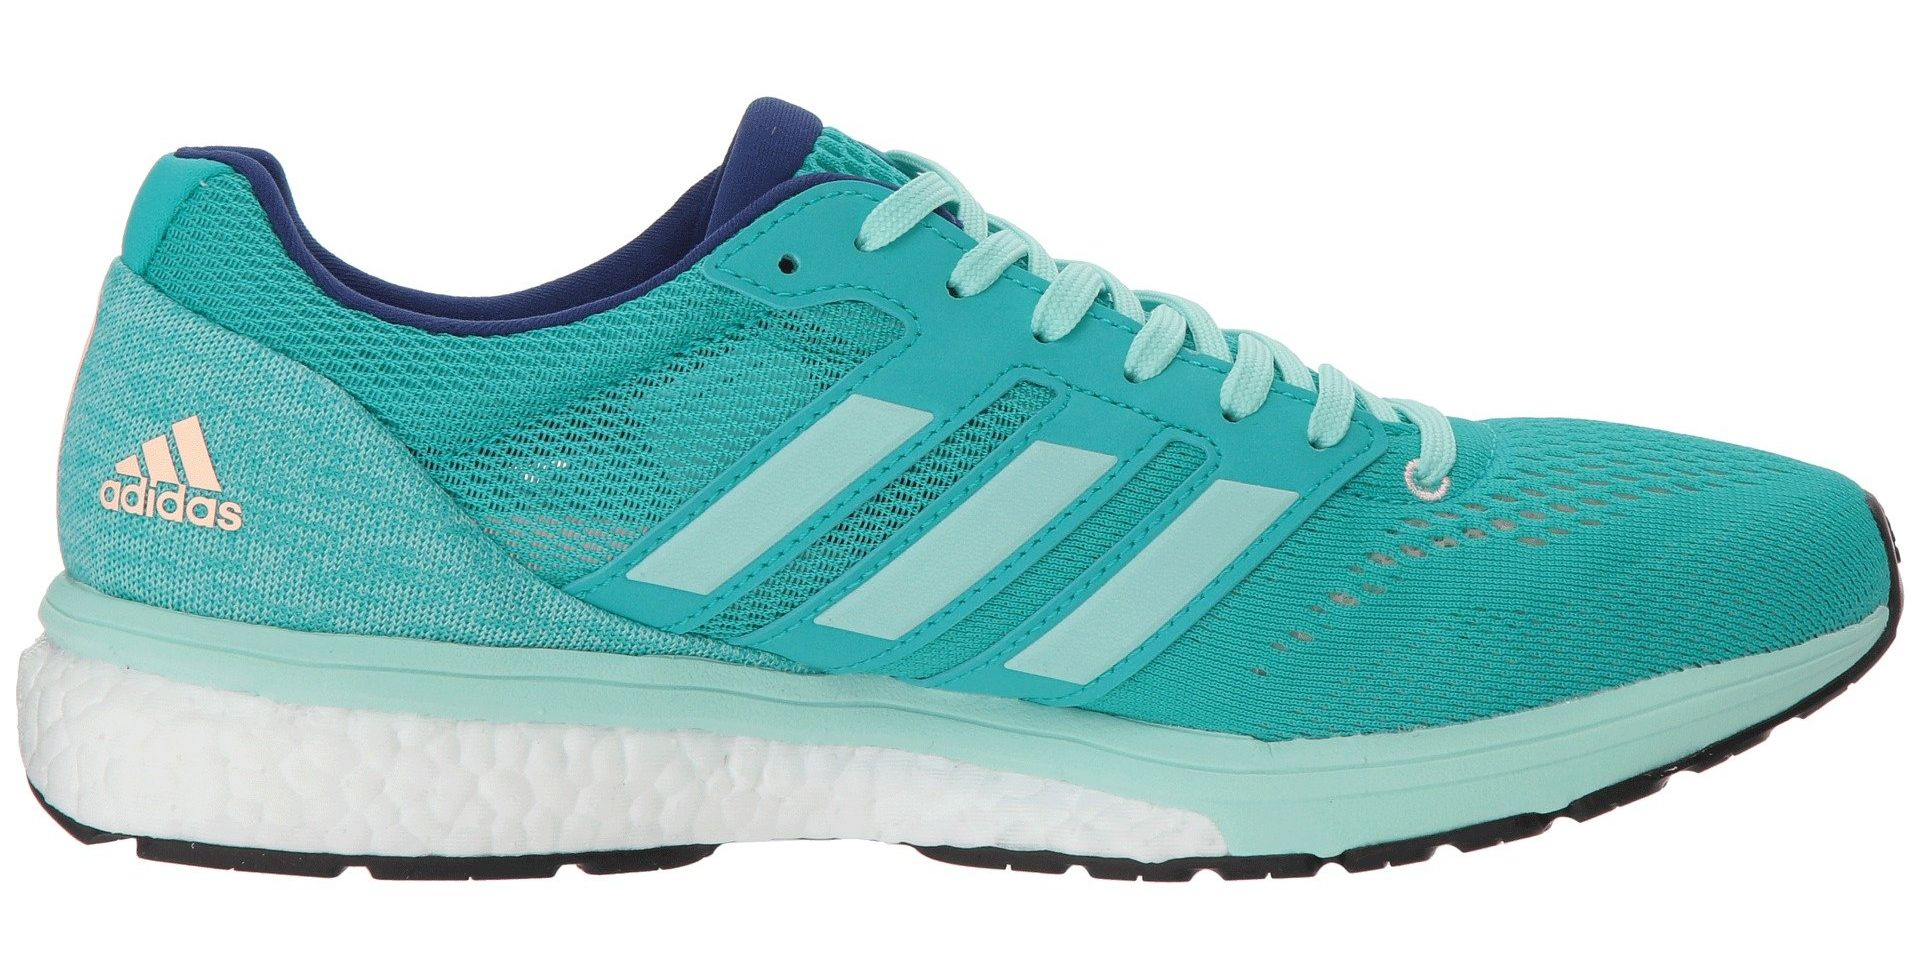 new product c7de9 b54ac Zappos. Adidas. Adizero Boston 7